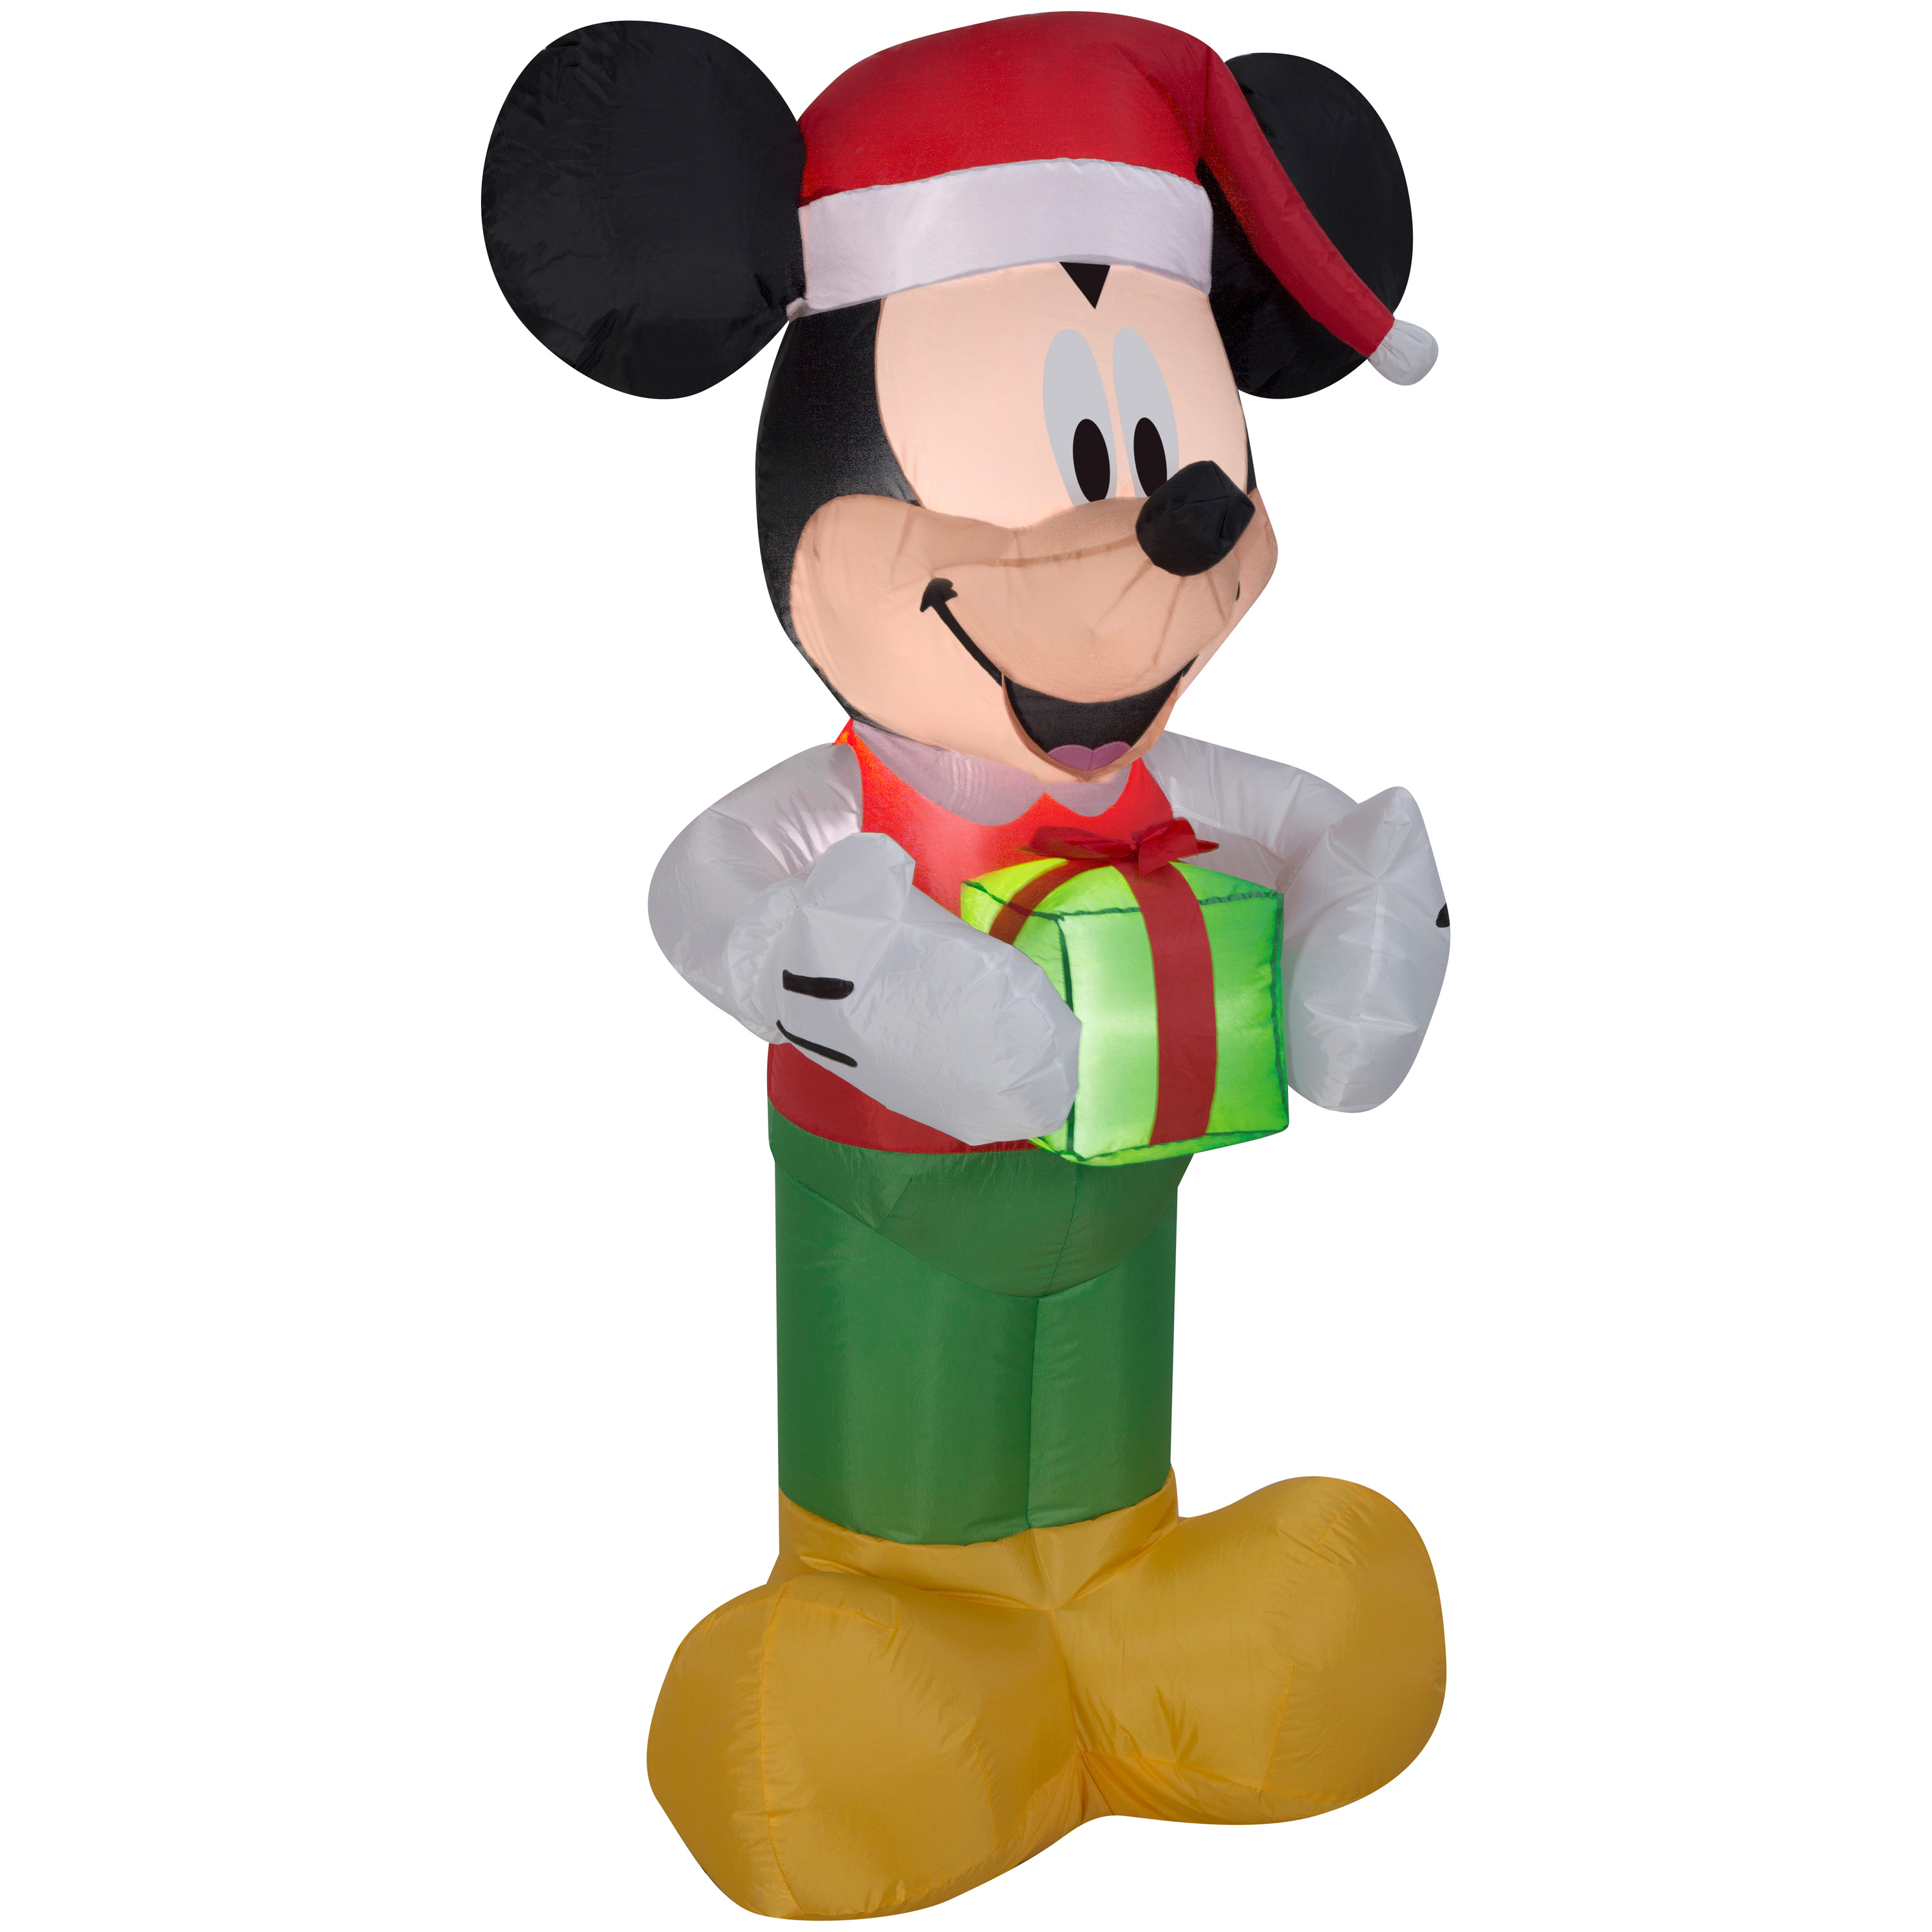 Image of Airblown Christmas Inflatable Mickey Holding Present 5' Tall